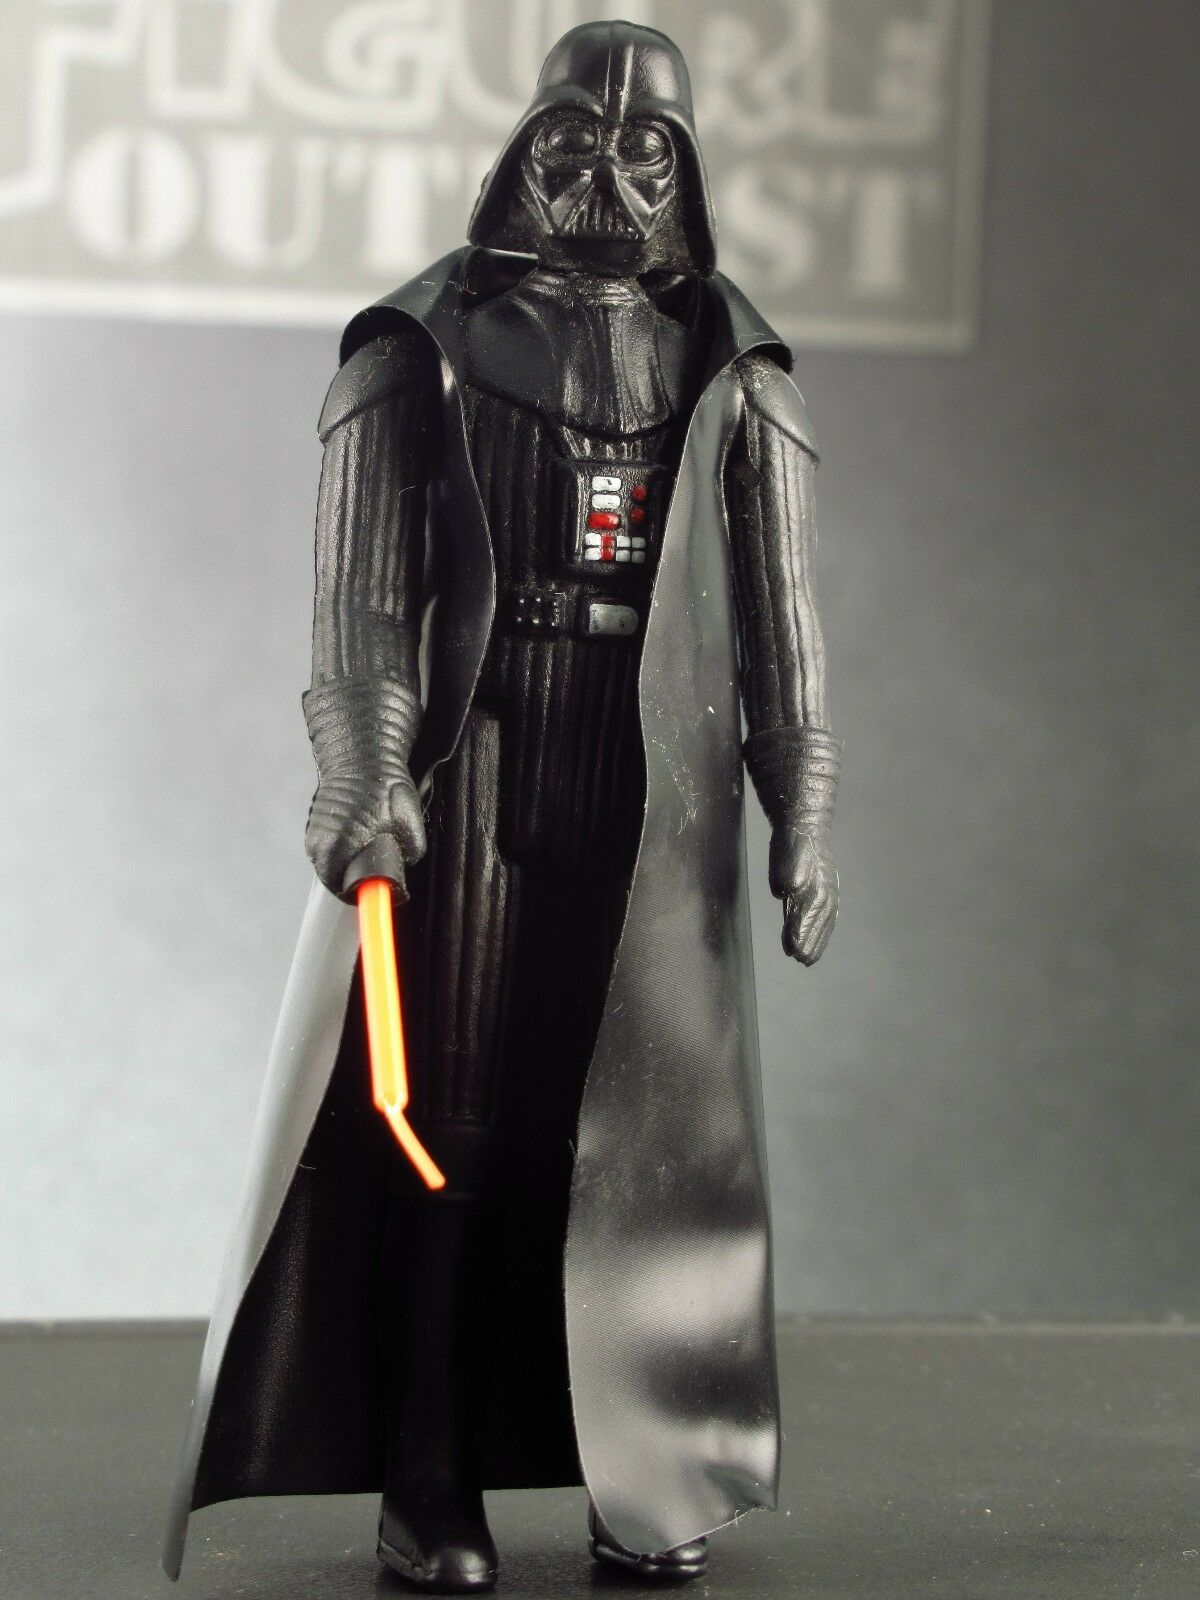 DARTH DARTH DARTH VADER 1977 Vtg Action Figure STAR WARS New Hope COMPLETE Authentic No COO 1c7ae6